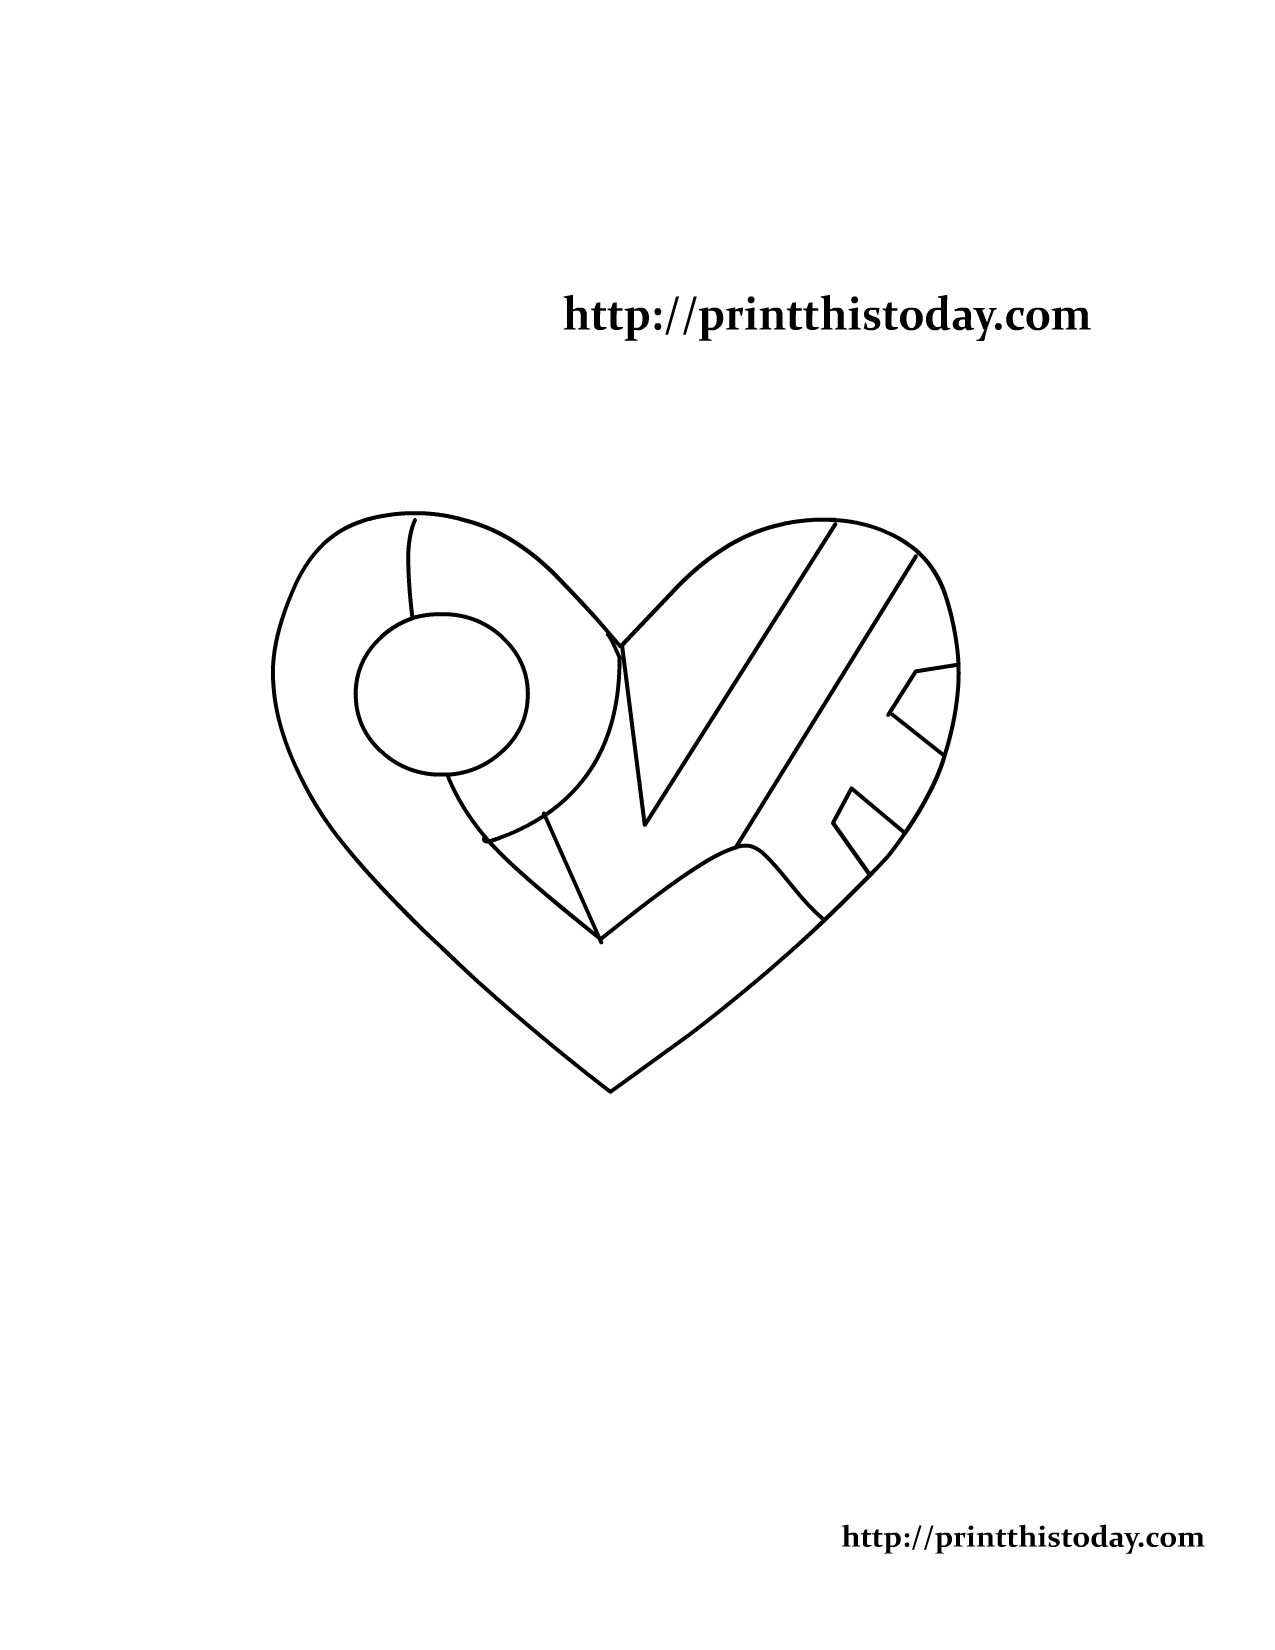 Printable coloring pages love - Word Love Written Inside A Heart Coloring Page